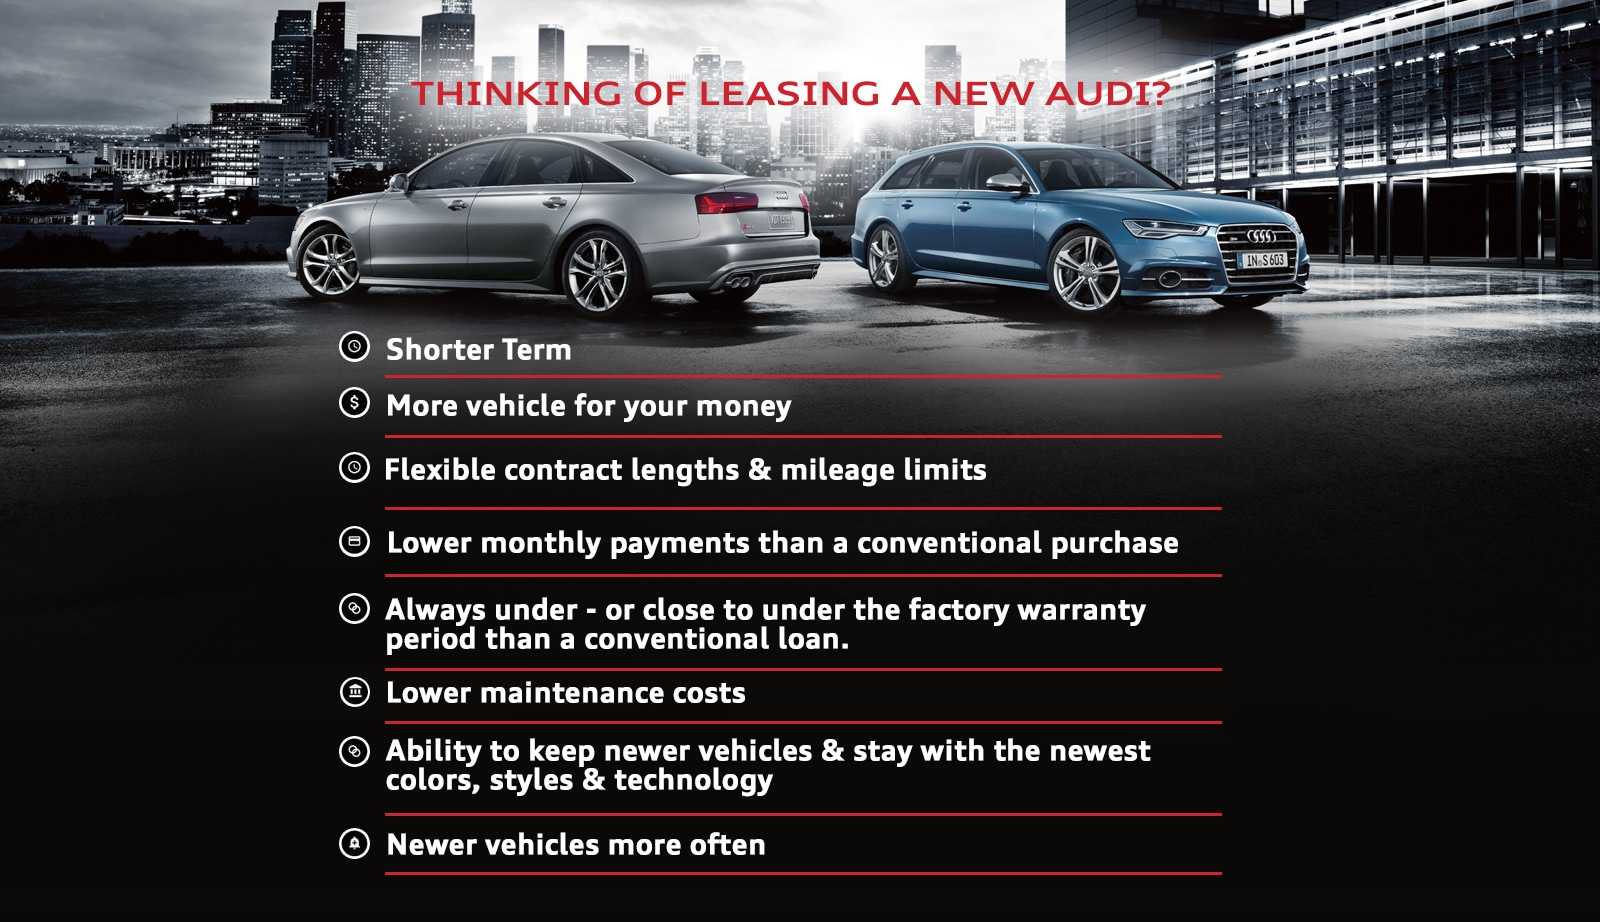 How To Get The Best Deal With The Xchange Leasing Program